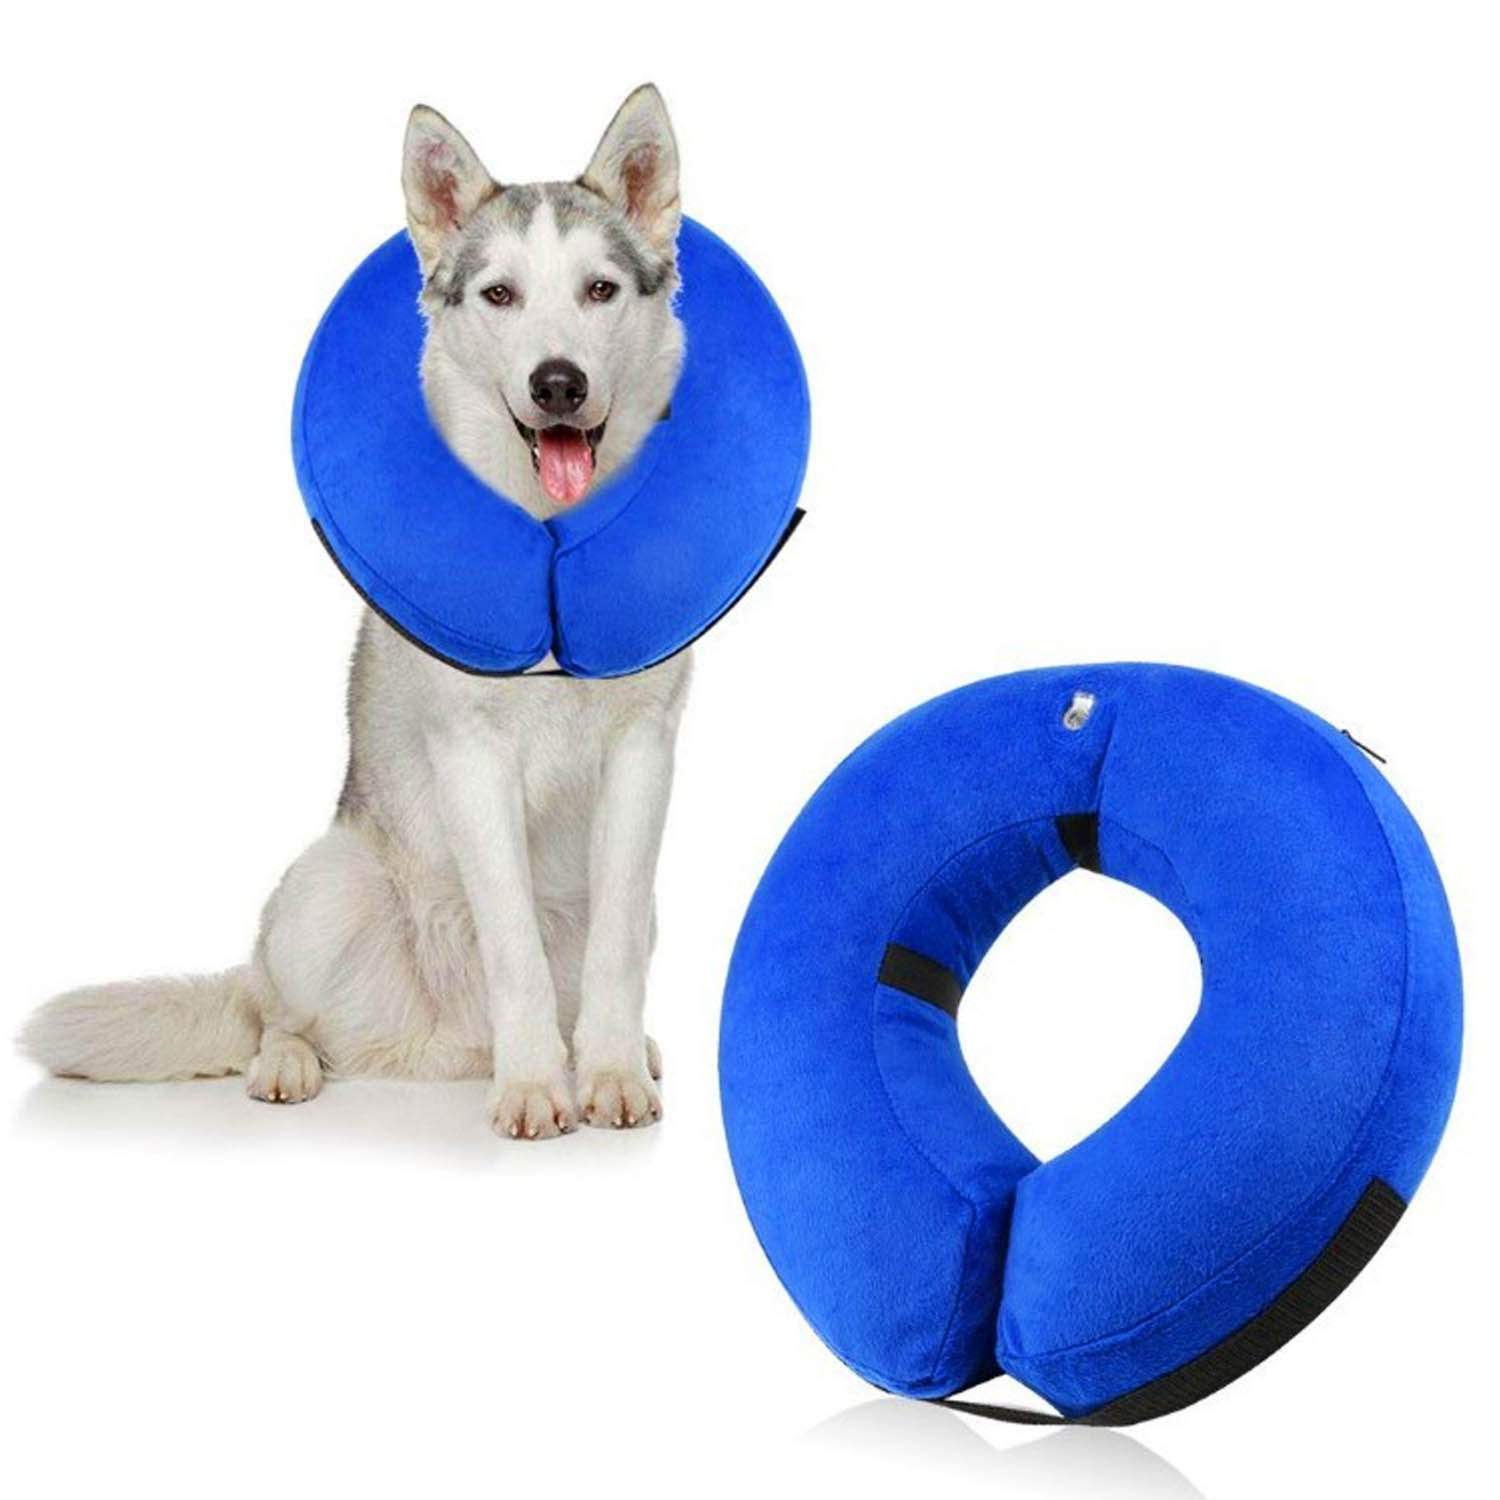 Behogar S M L Adjustable Inflatable Dog Cat Elizabethan Collars Wound Healing Remedy Recovery Protective E-Collar Pet Supplies Собака